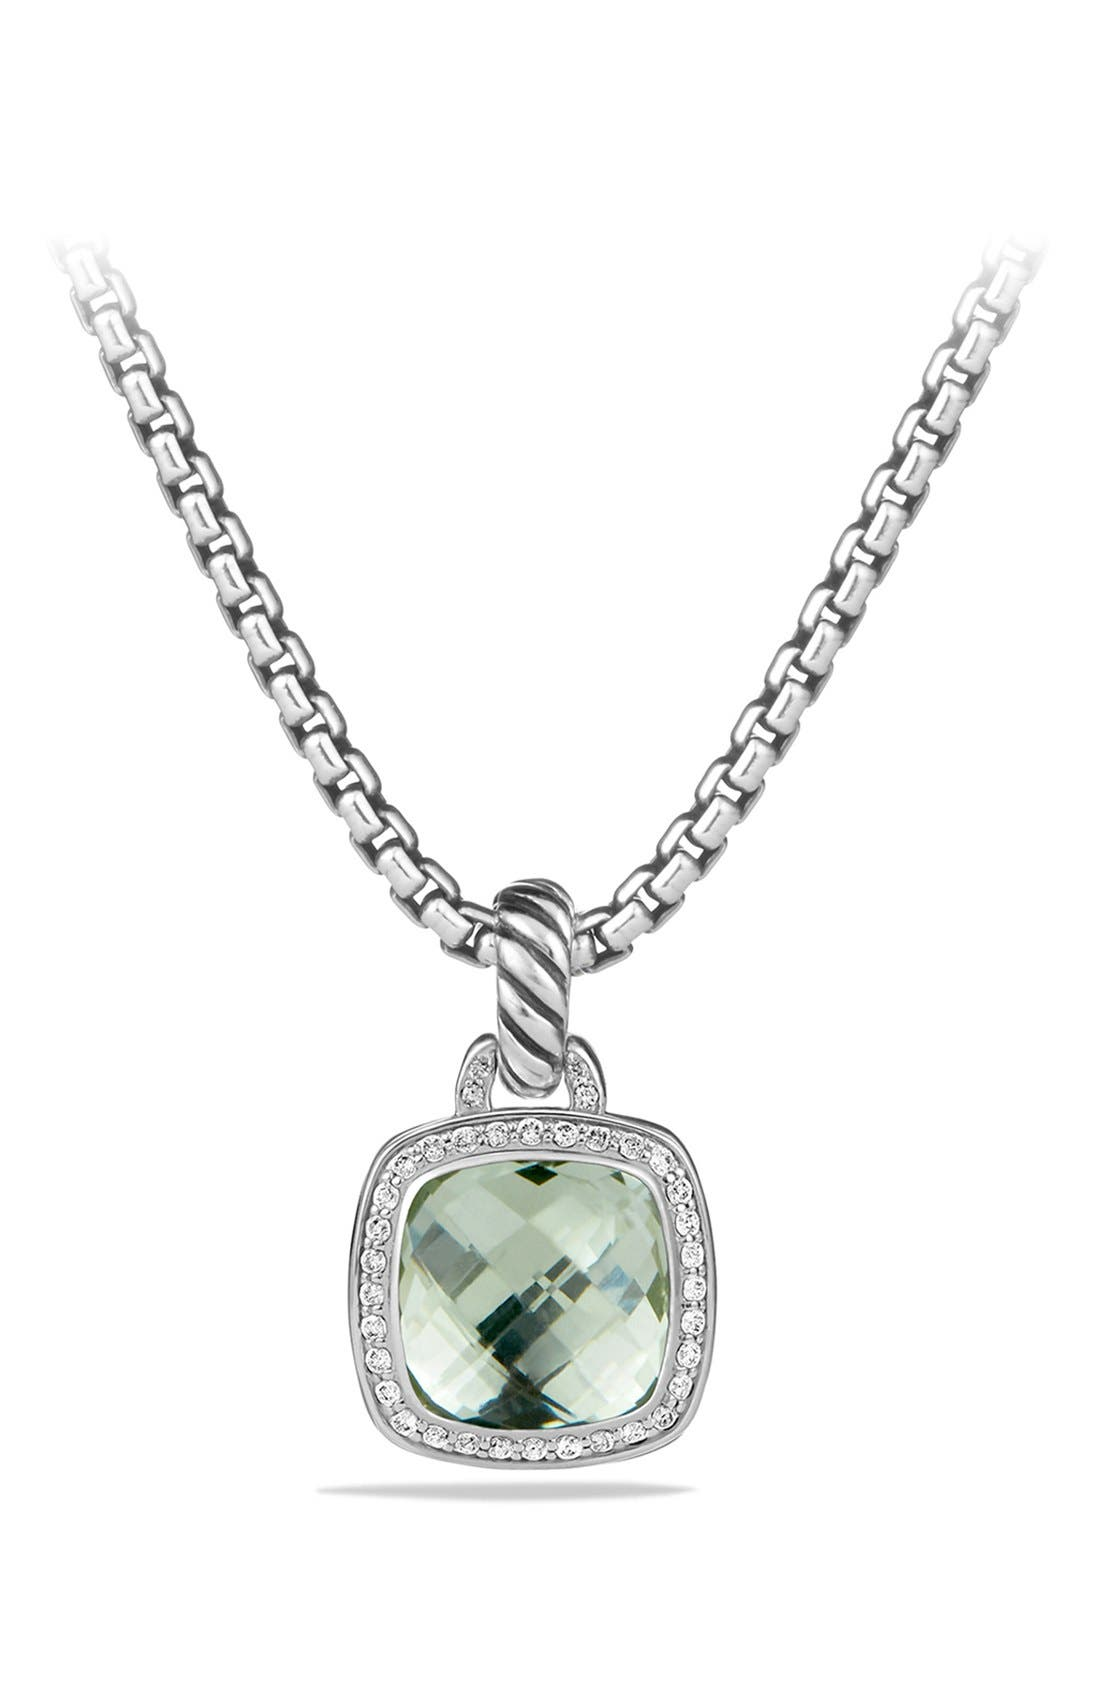 Main Image - David Yurman 'Albion' Pendant and Diamonds